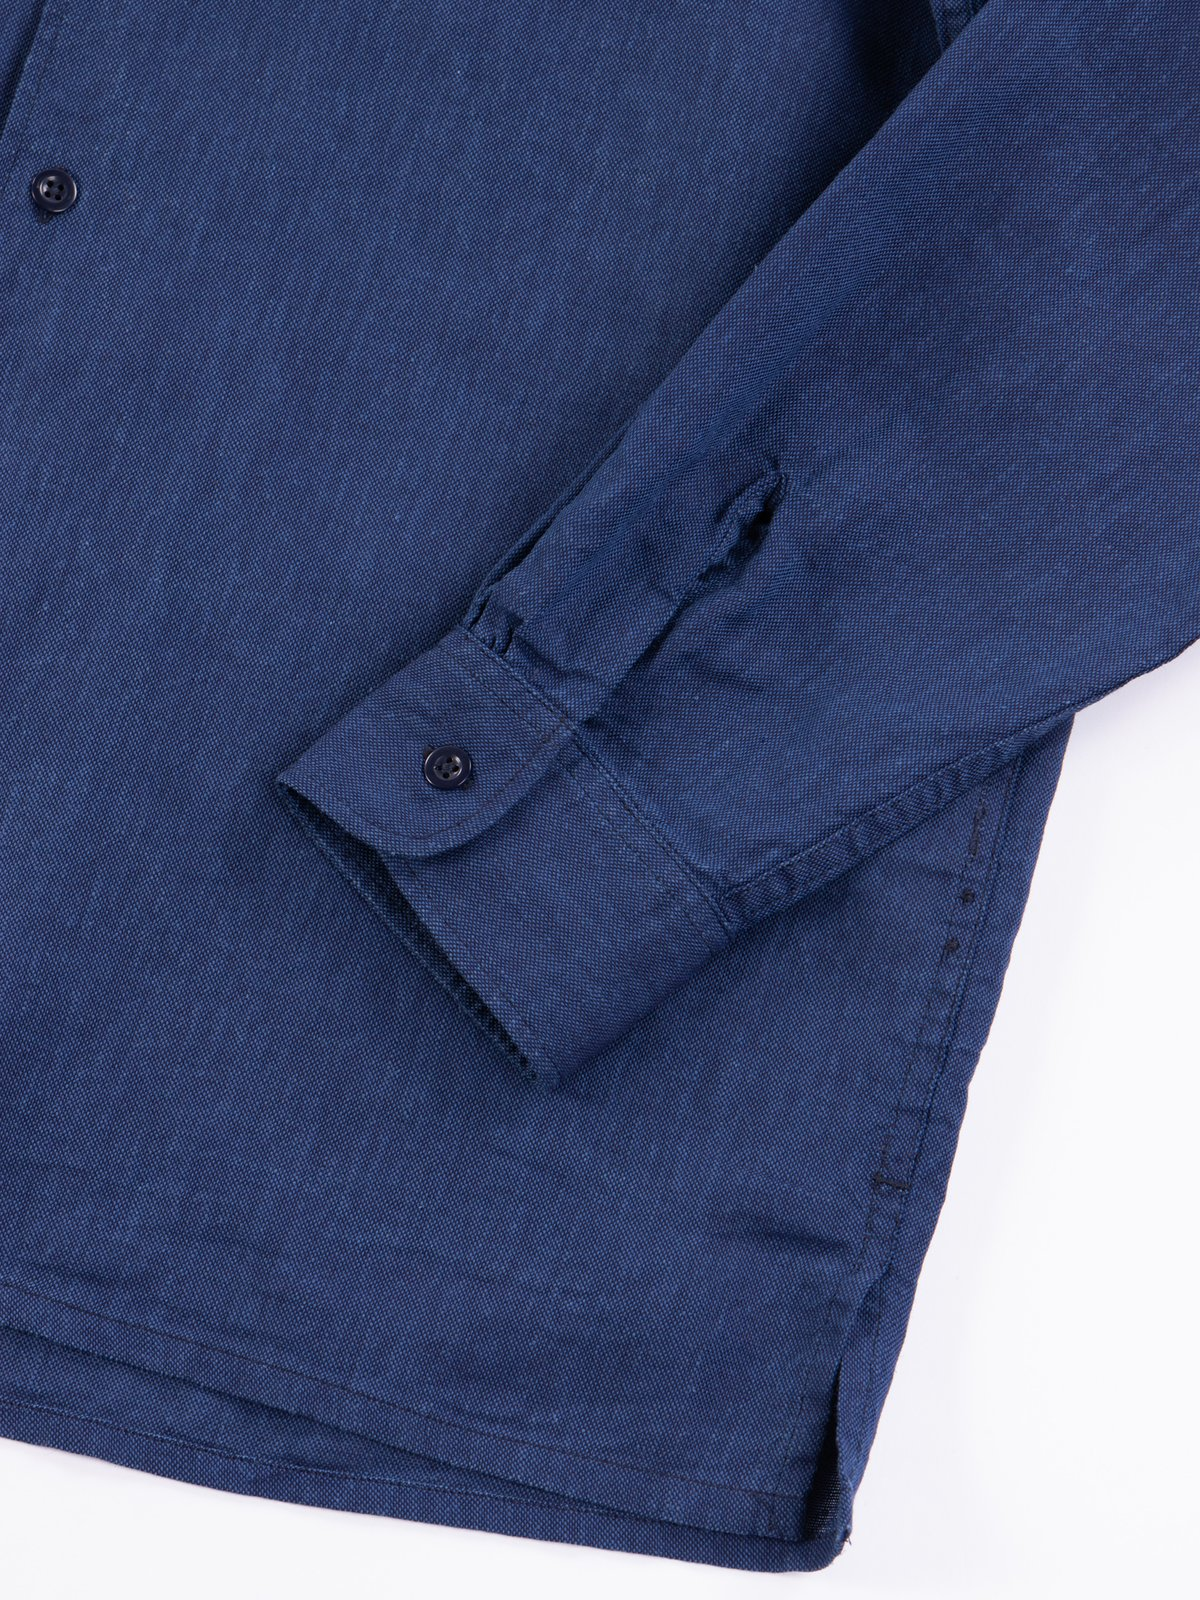 Navy CL Solid Classic Shirt - Image 5